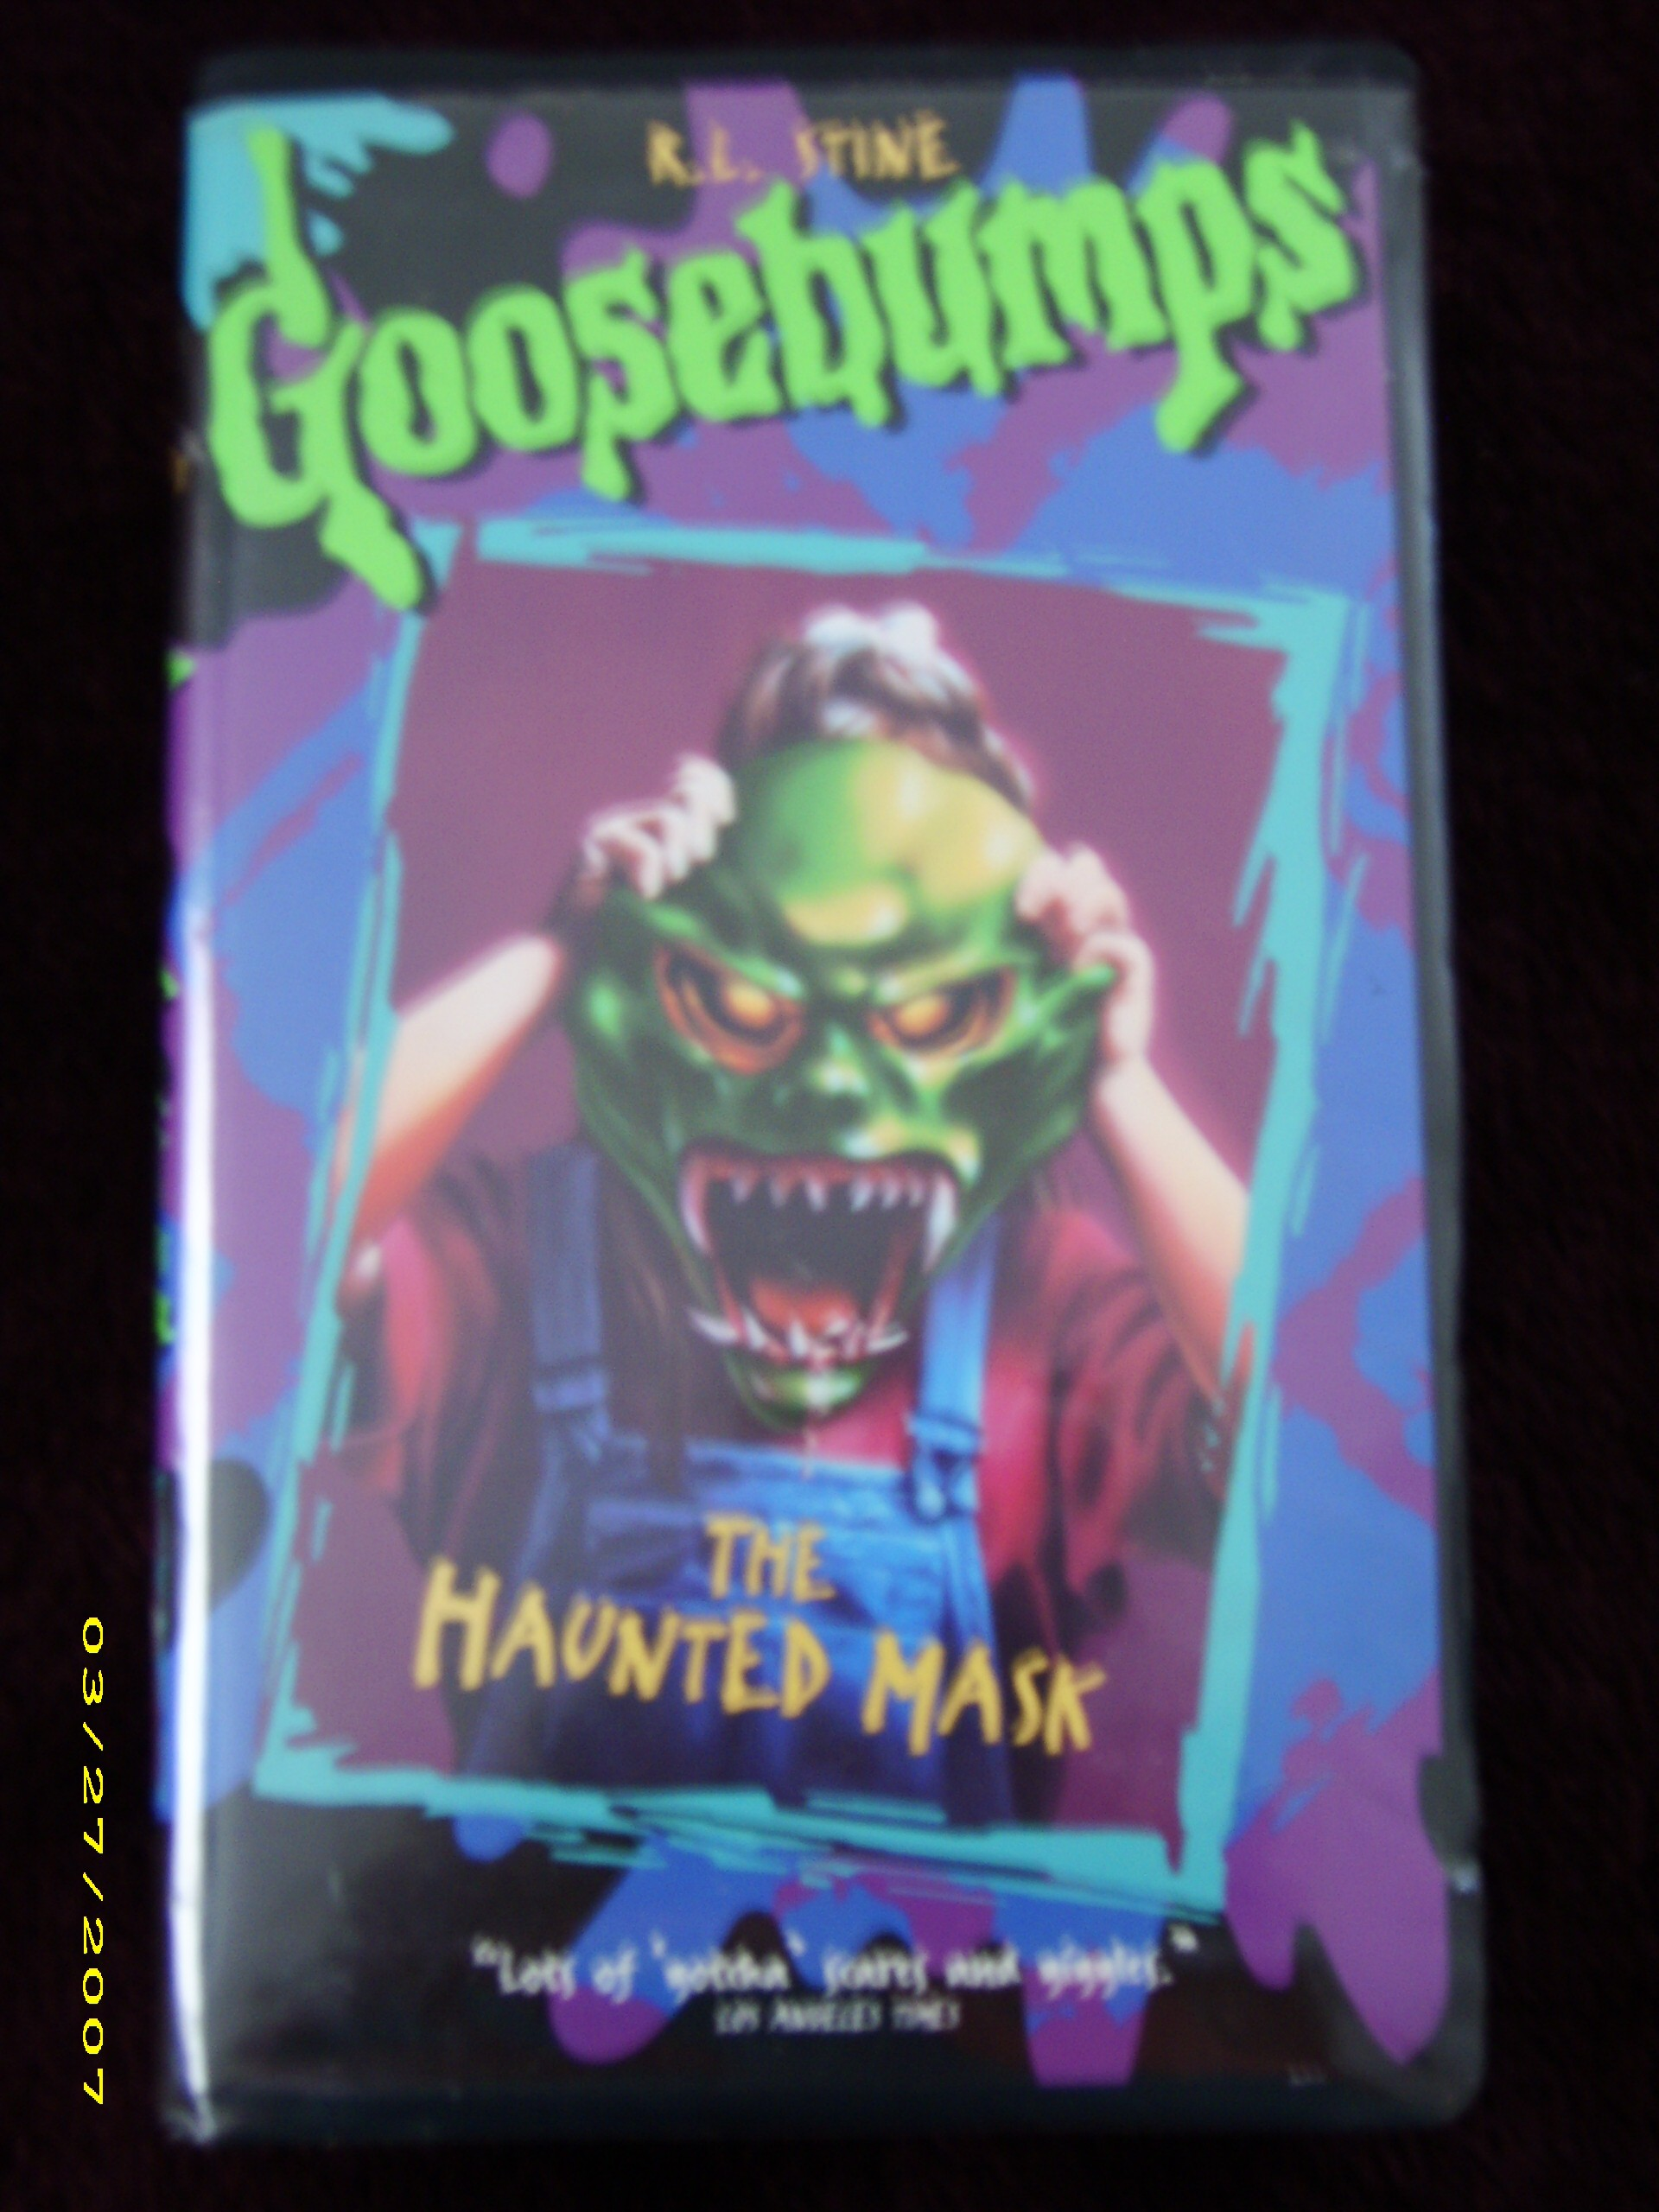 goosebumps stay out of the basement movie the